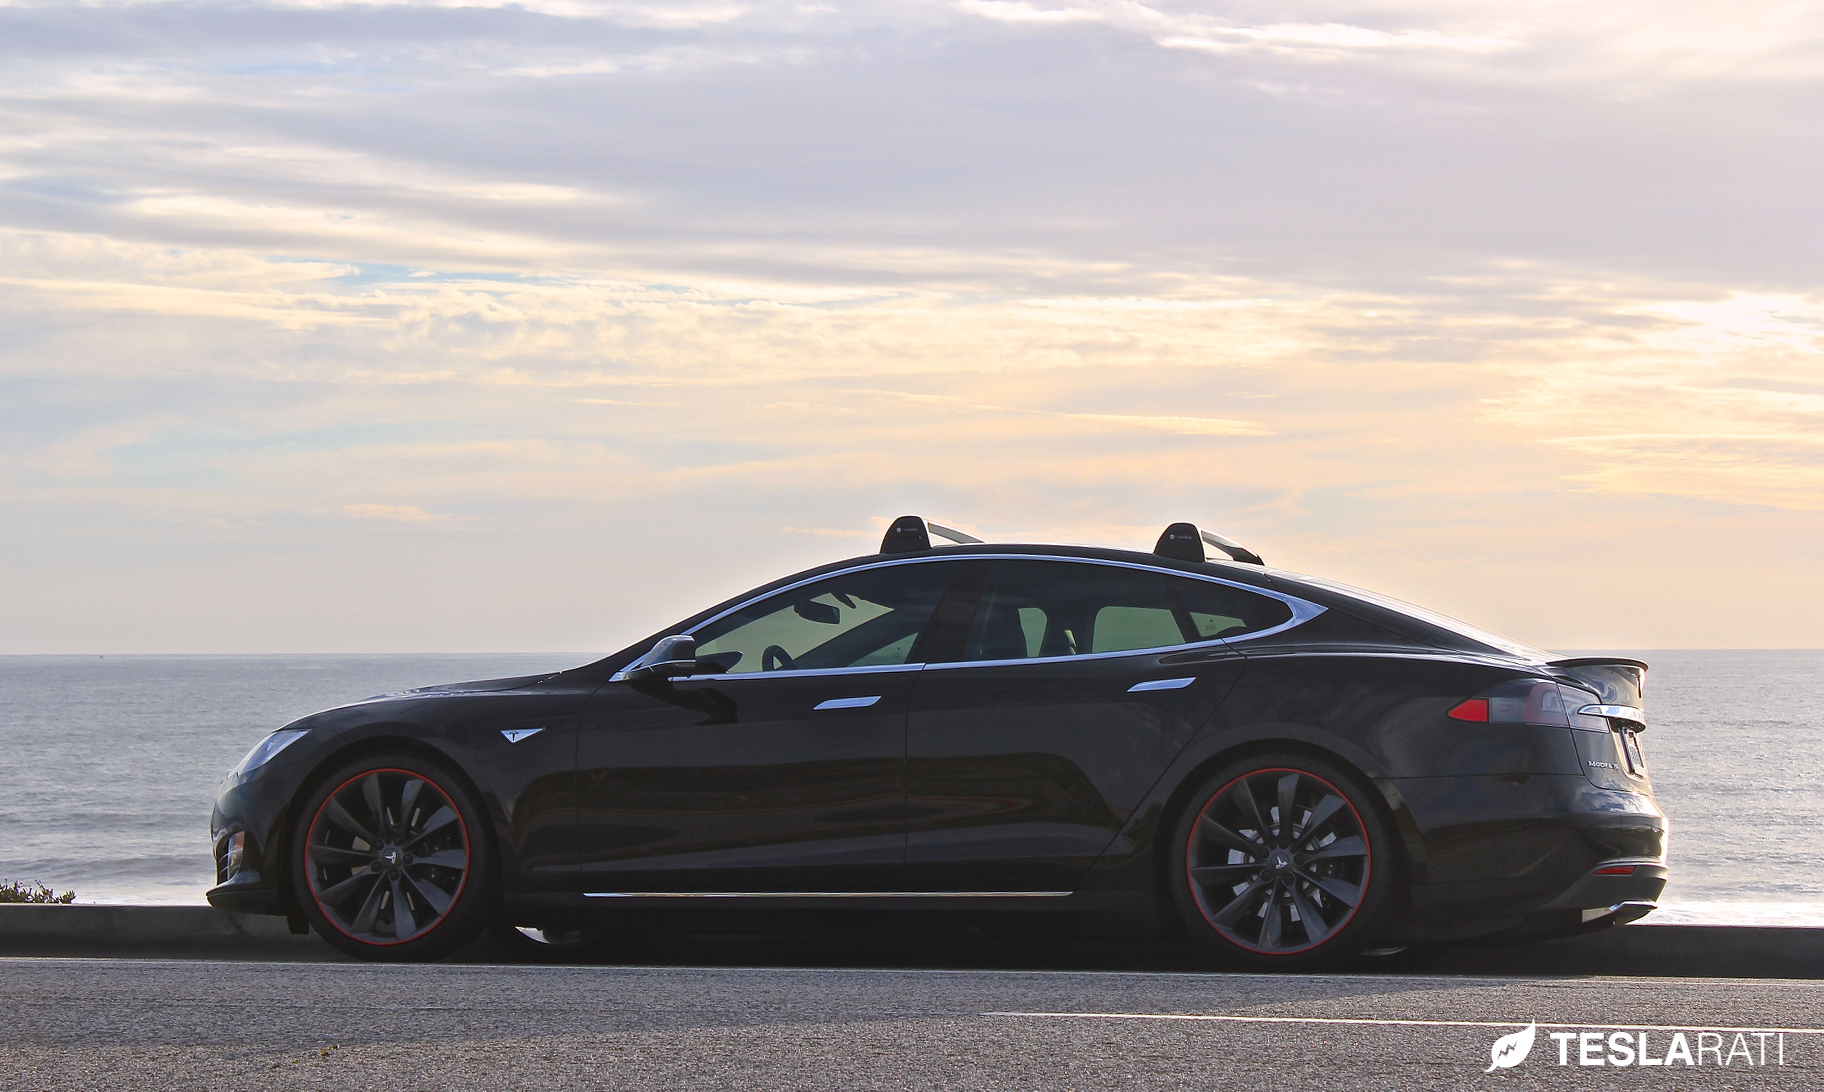 Tesla-Model-S-Whispbar-Roof-Rack